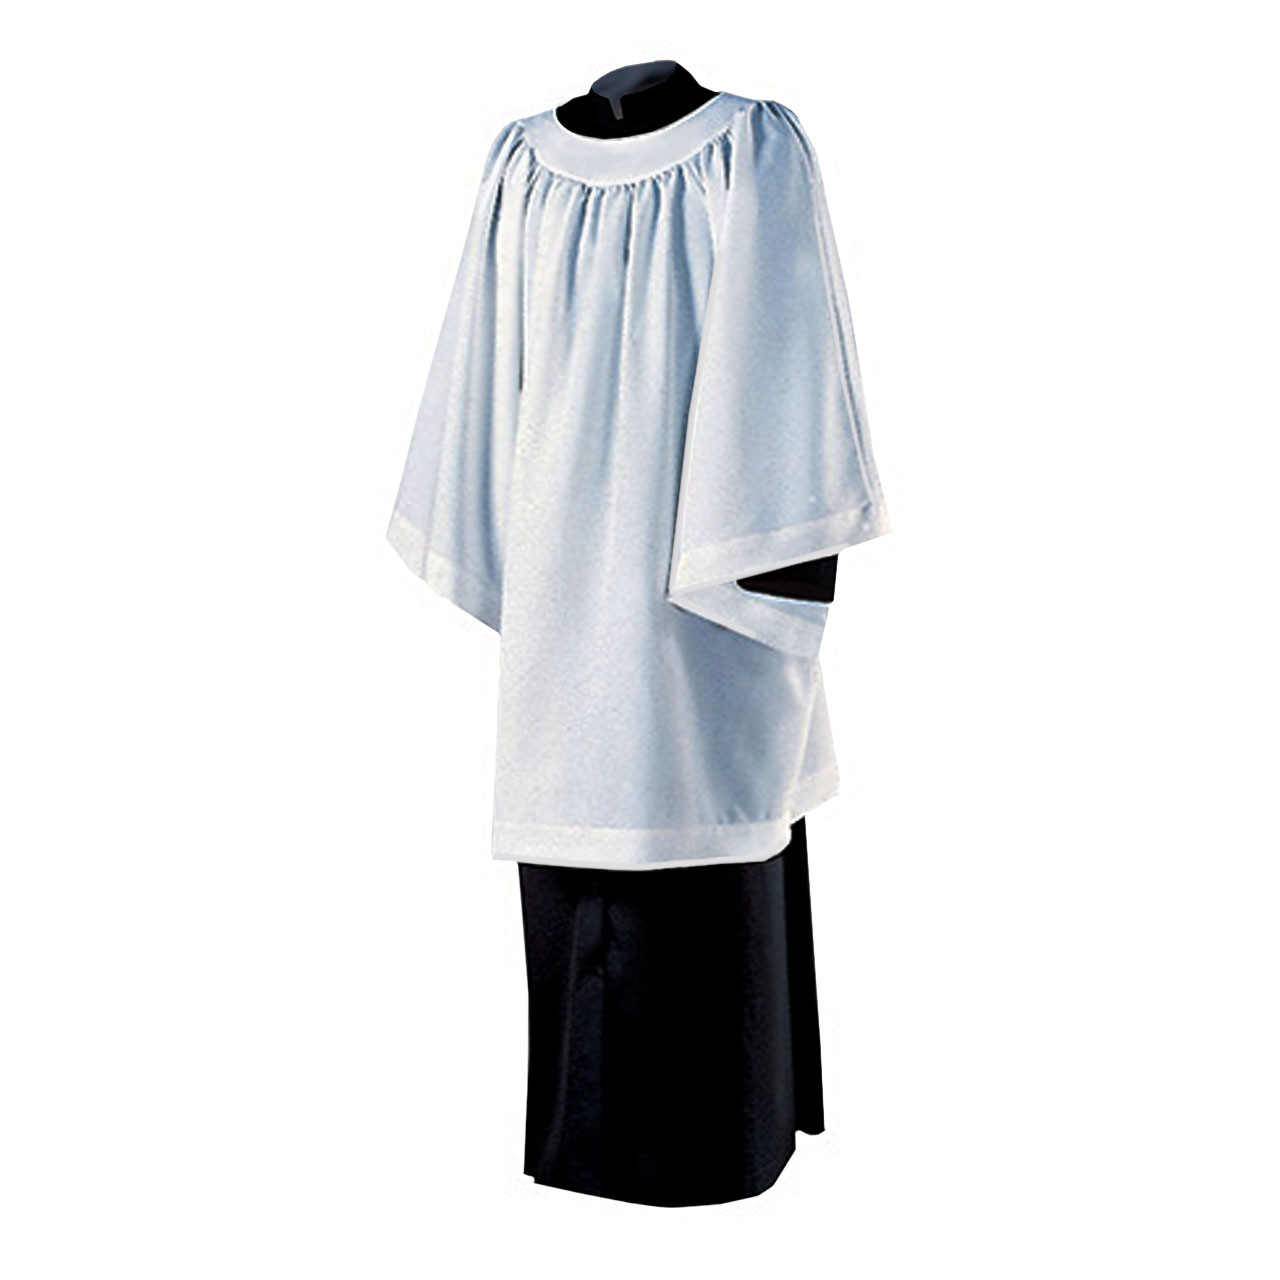 335 Liturgical Surplice from Abbey Brands